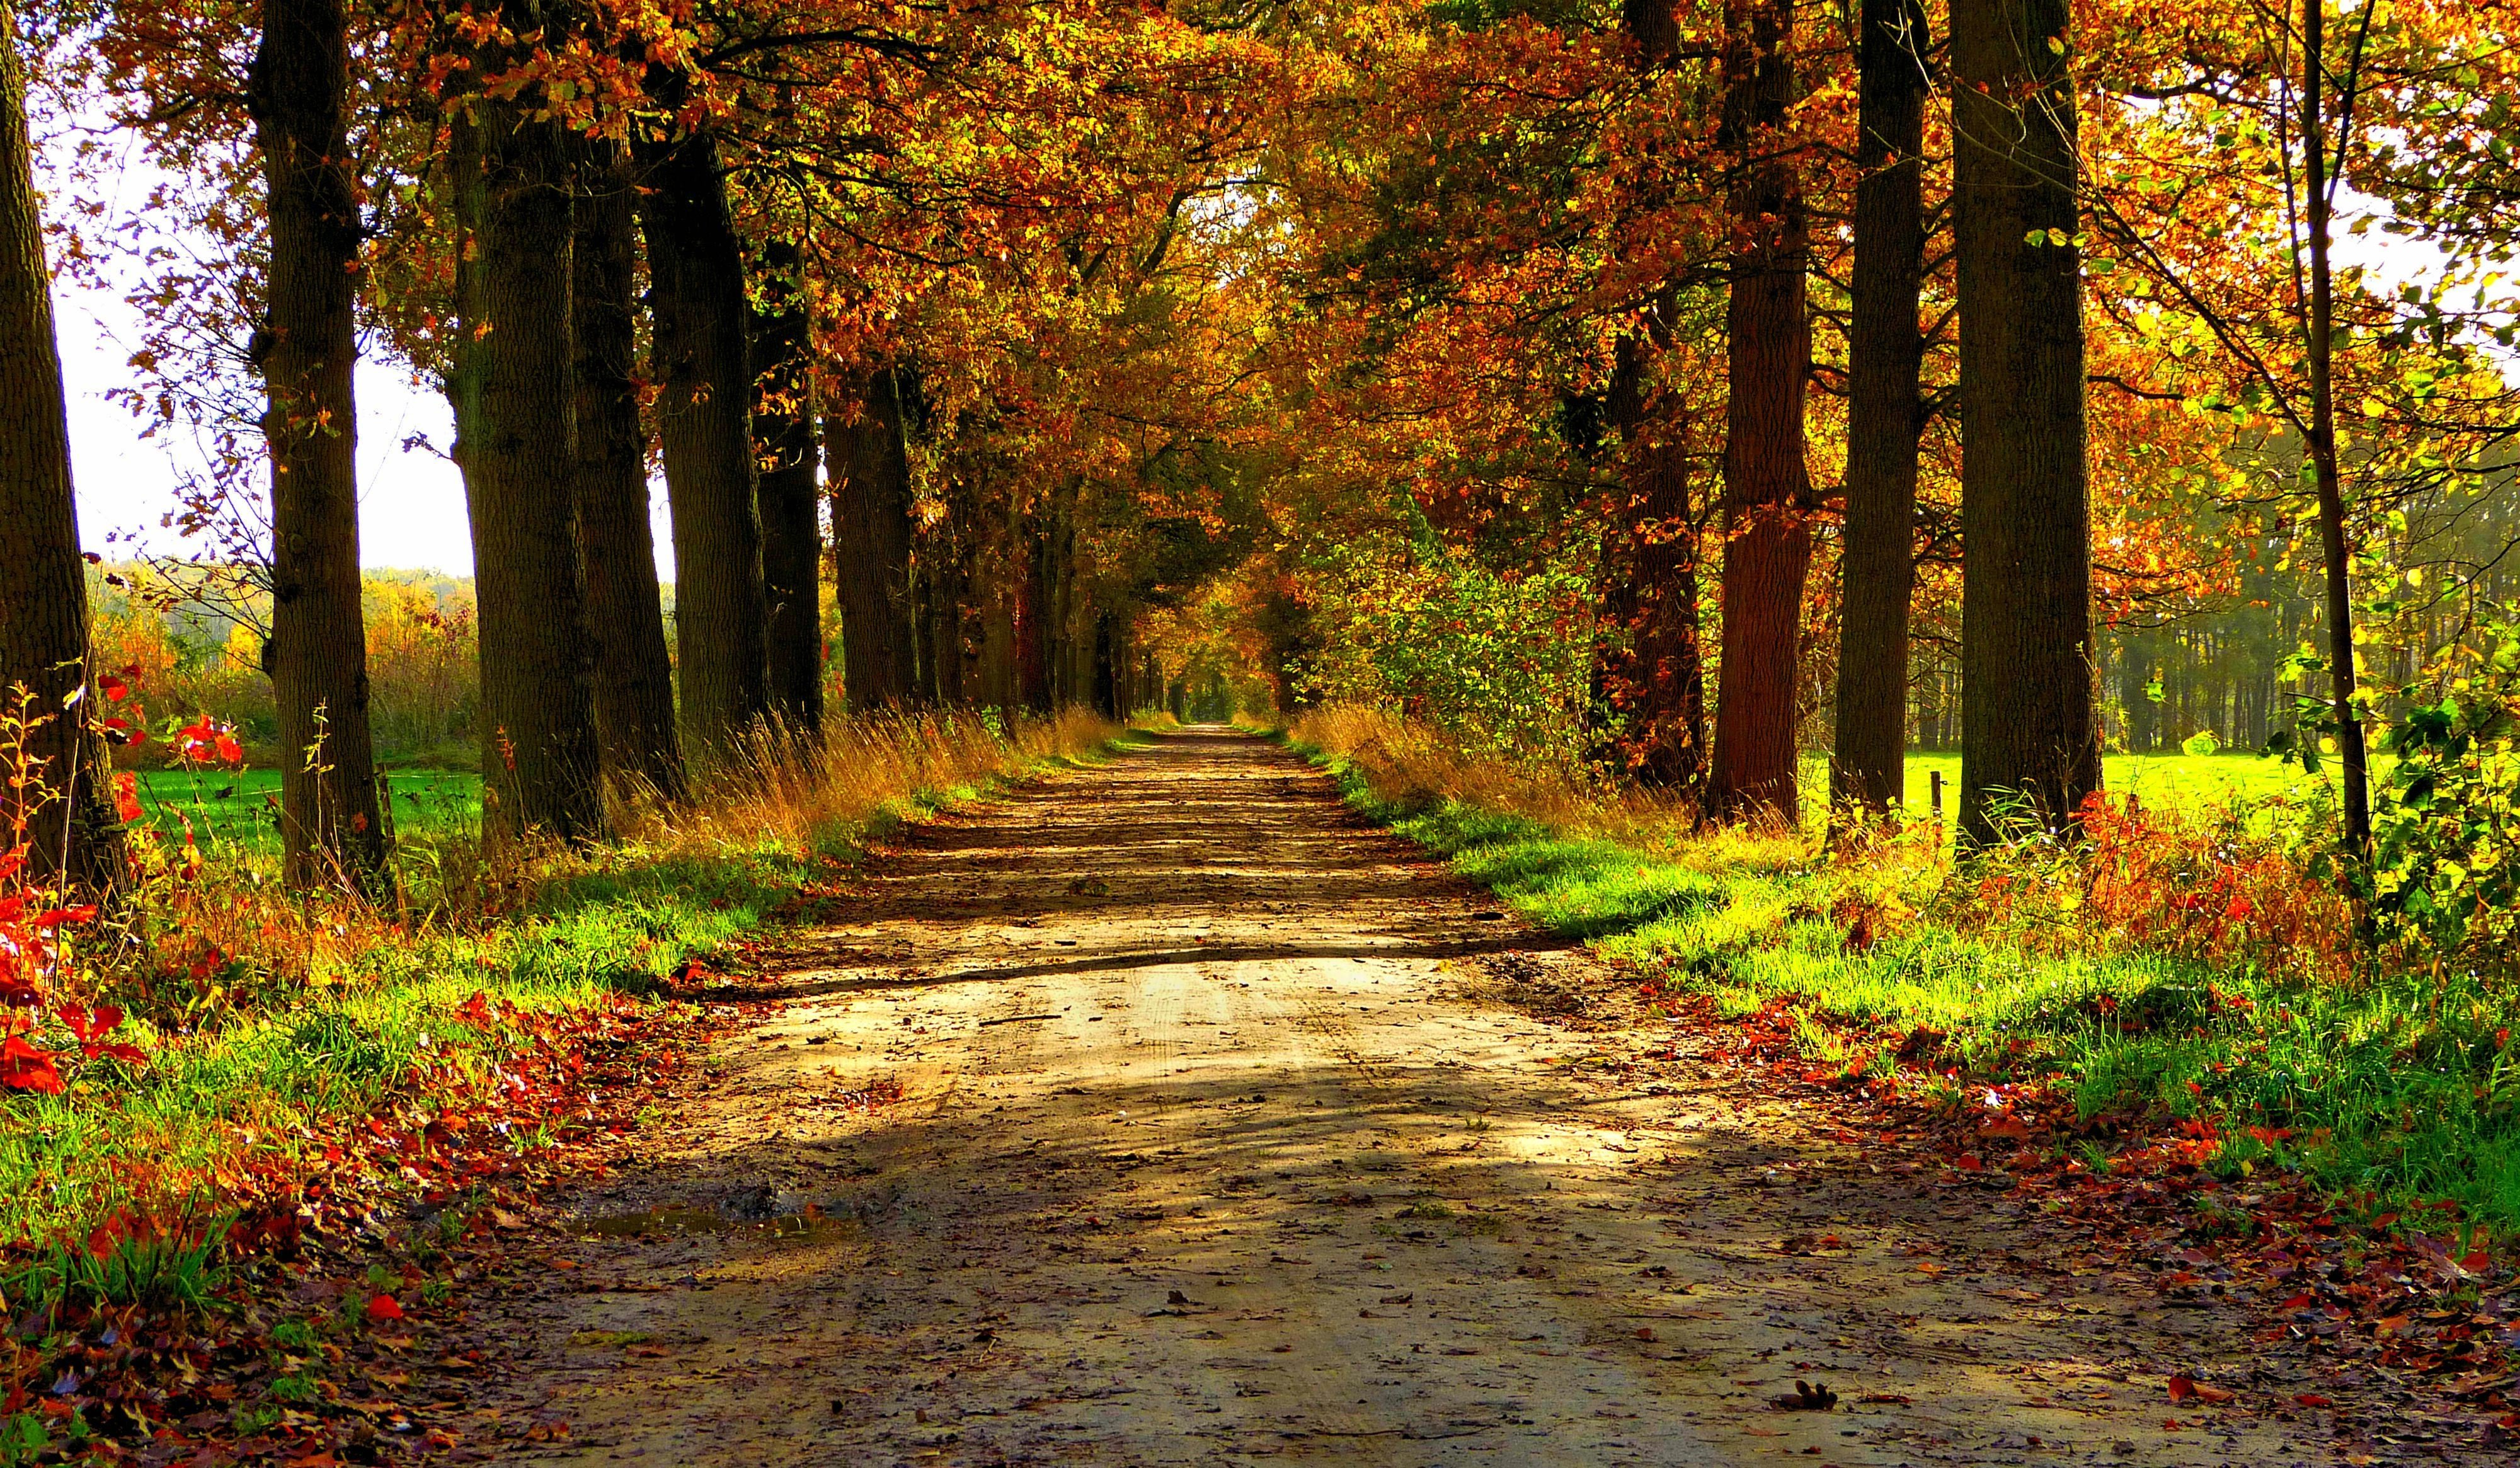 Fall Leaves Road Wallpaper Autumn Nature Forest Path Park Colorful Leaves Trees Road